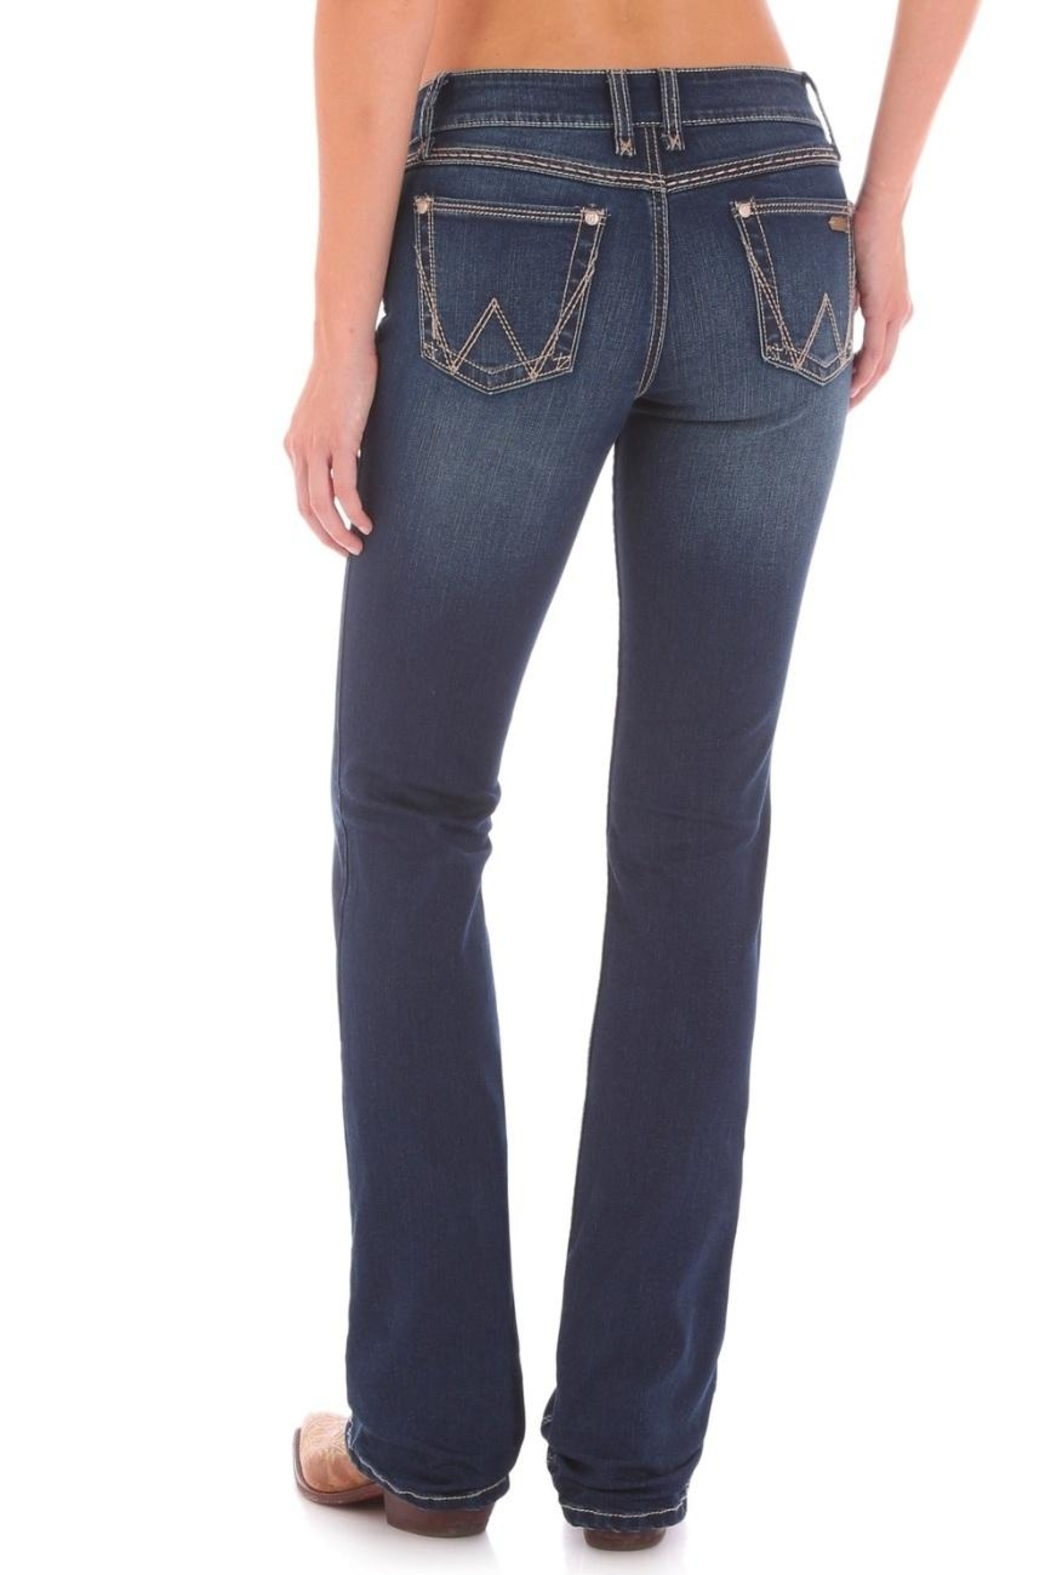 Wrangler Retro Boot-Cut Jeans - Back Cropped Image